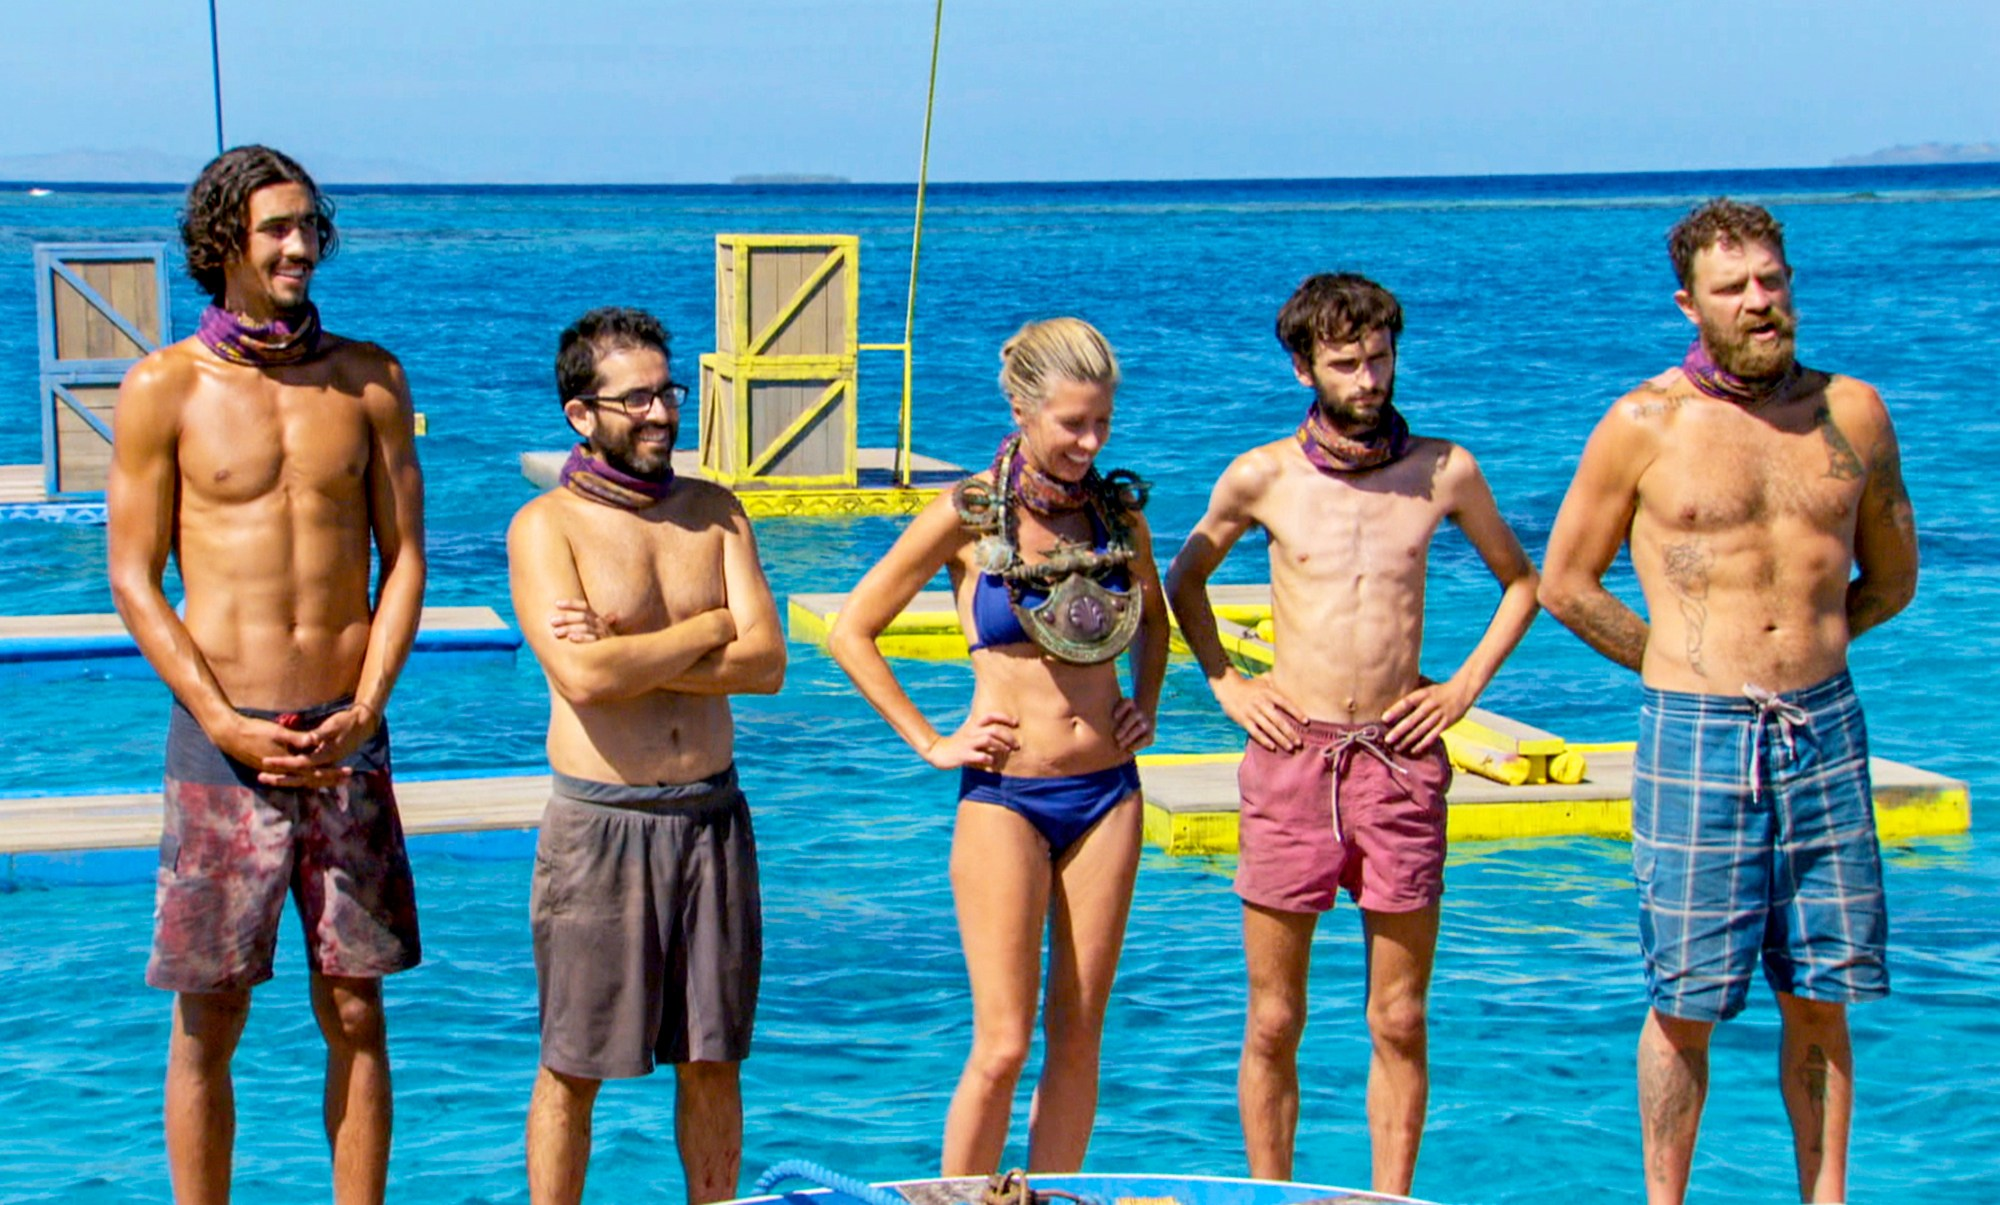 Devon Pinto, Mike Zahalsky, Chrissy Hofbeck, Ryan Ulrich and Ben Driebergen on the finale of Survivor 35, themed 'Heroes vs. Healers vs. Hustlers'